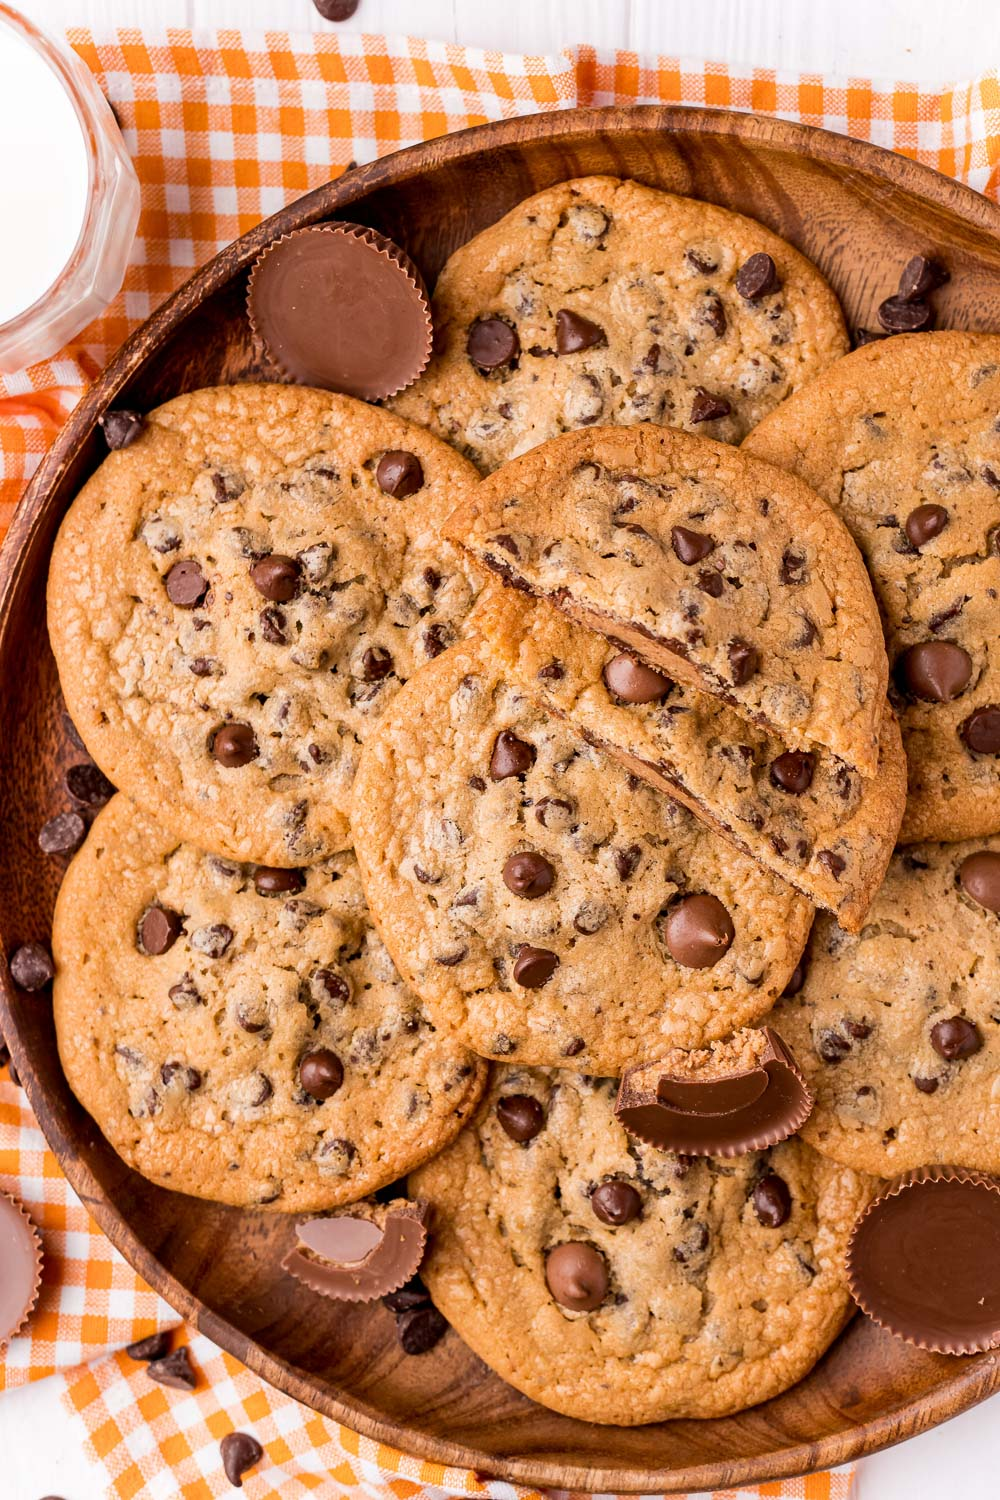 An overhead picture of a pile of Reese's Stuffed Cookies.